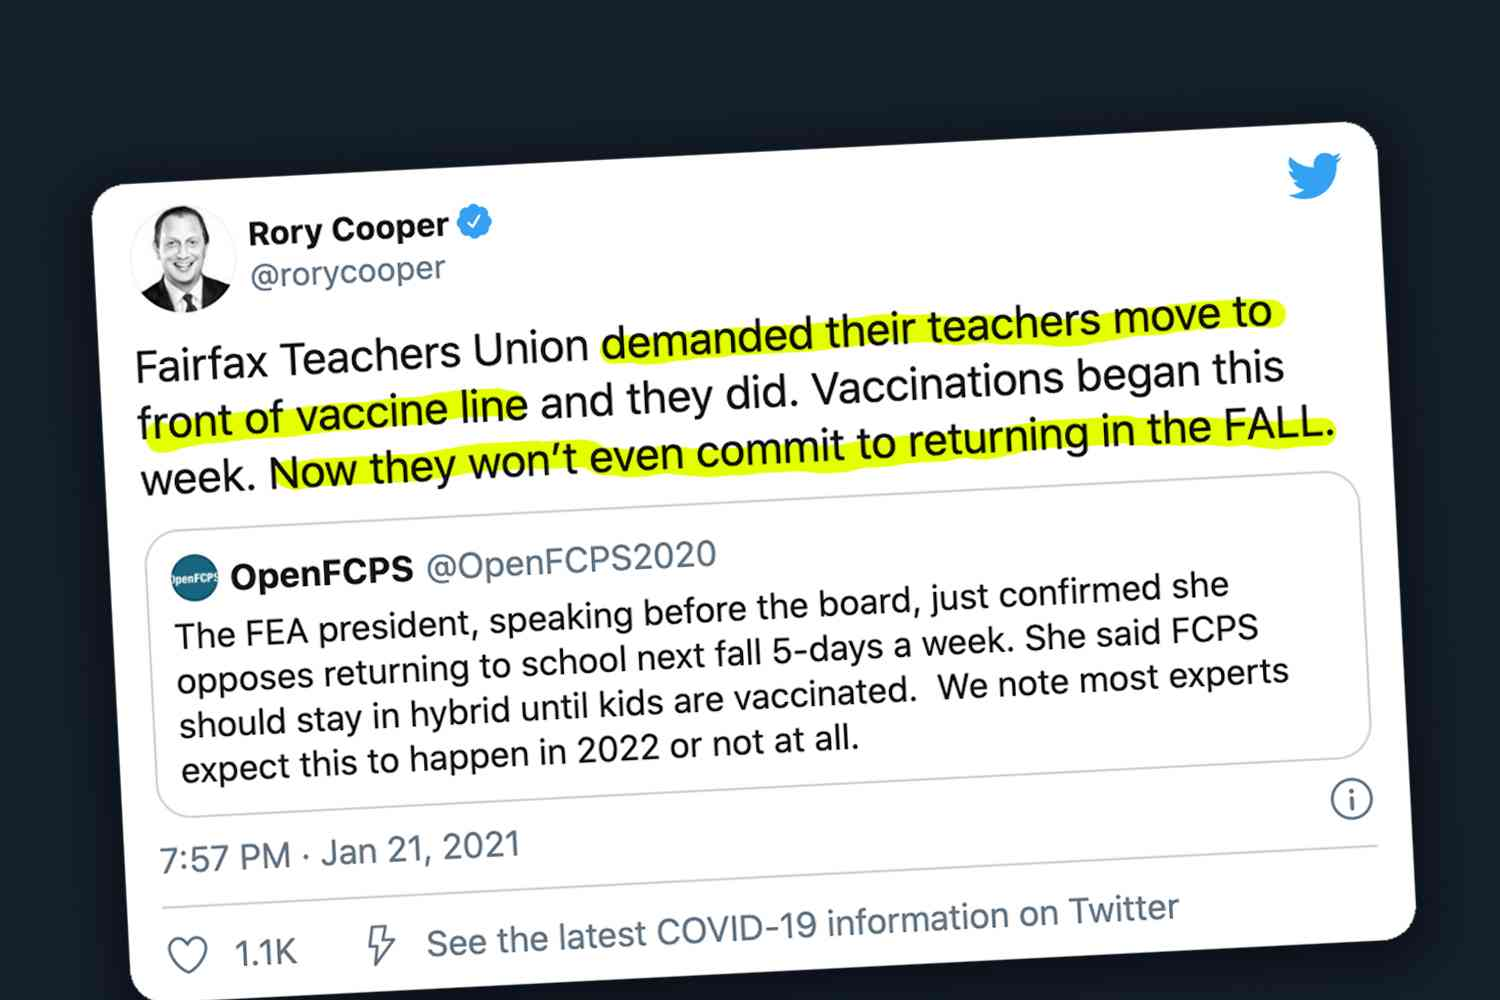 Teachers Union Refuses to Teach In-Person Unless They Can Jump the Vaccination Line. But When They Get What They Want, They Move the Goalposts.